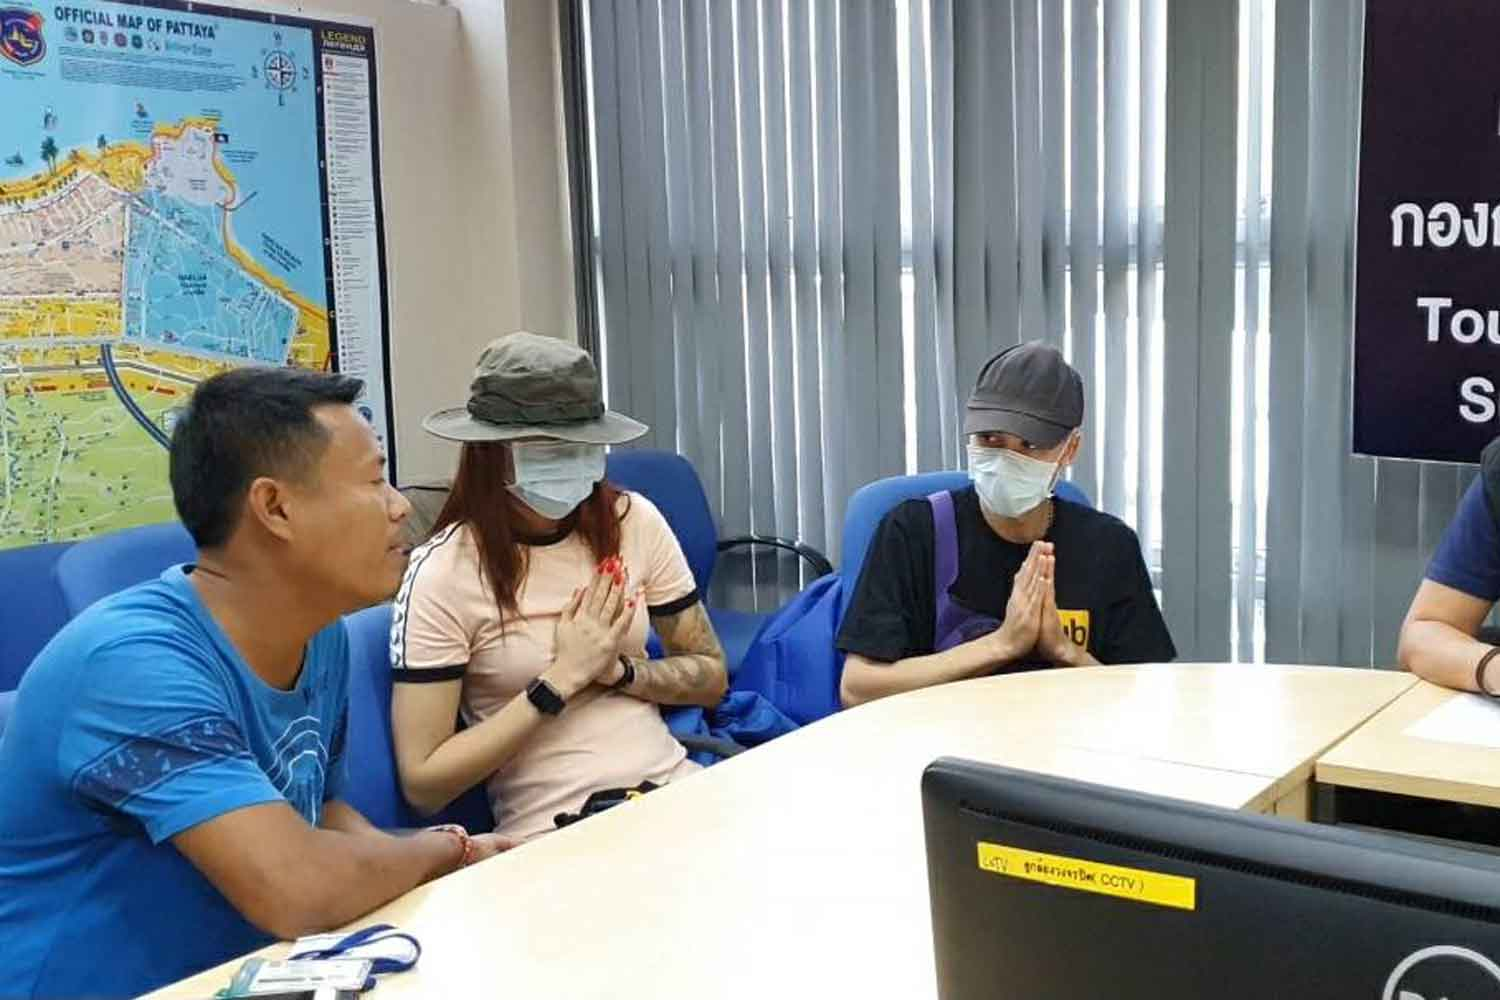 Roman Grigorenko, 26, right, and his partner Daria Vinogradova, 19, apologise for having sex on Pattaya beach, at the Pattaya police station in Pattaya City on Saturday evening. (Police photo)